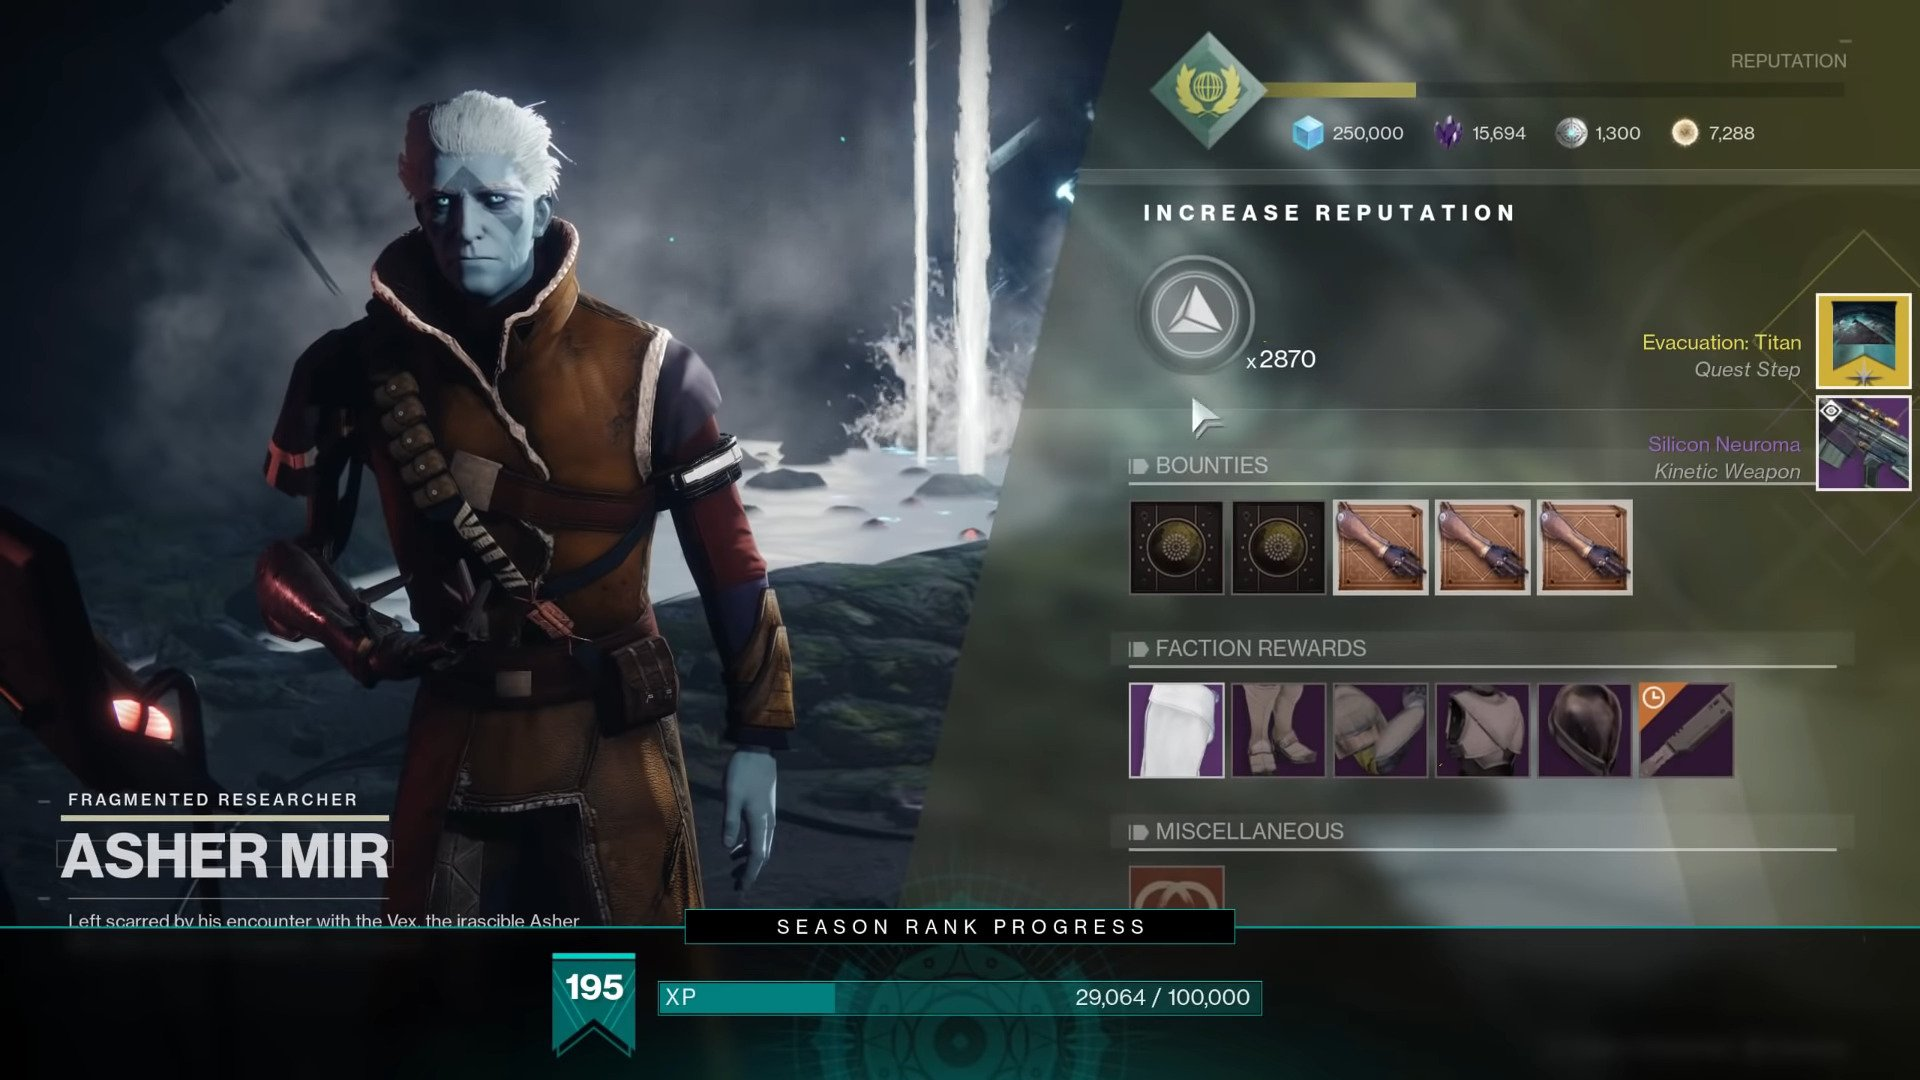 Destiny 2: Weekly Reset For 9/22 Features Strange Terrain Nightfall And Io Flashpoint